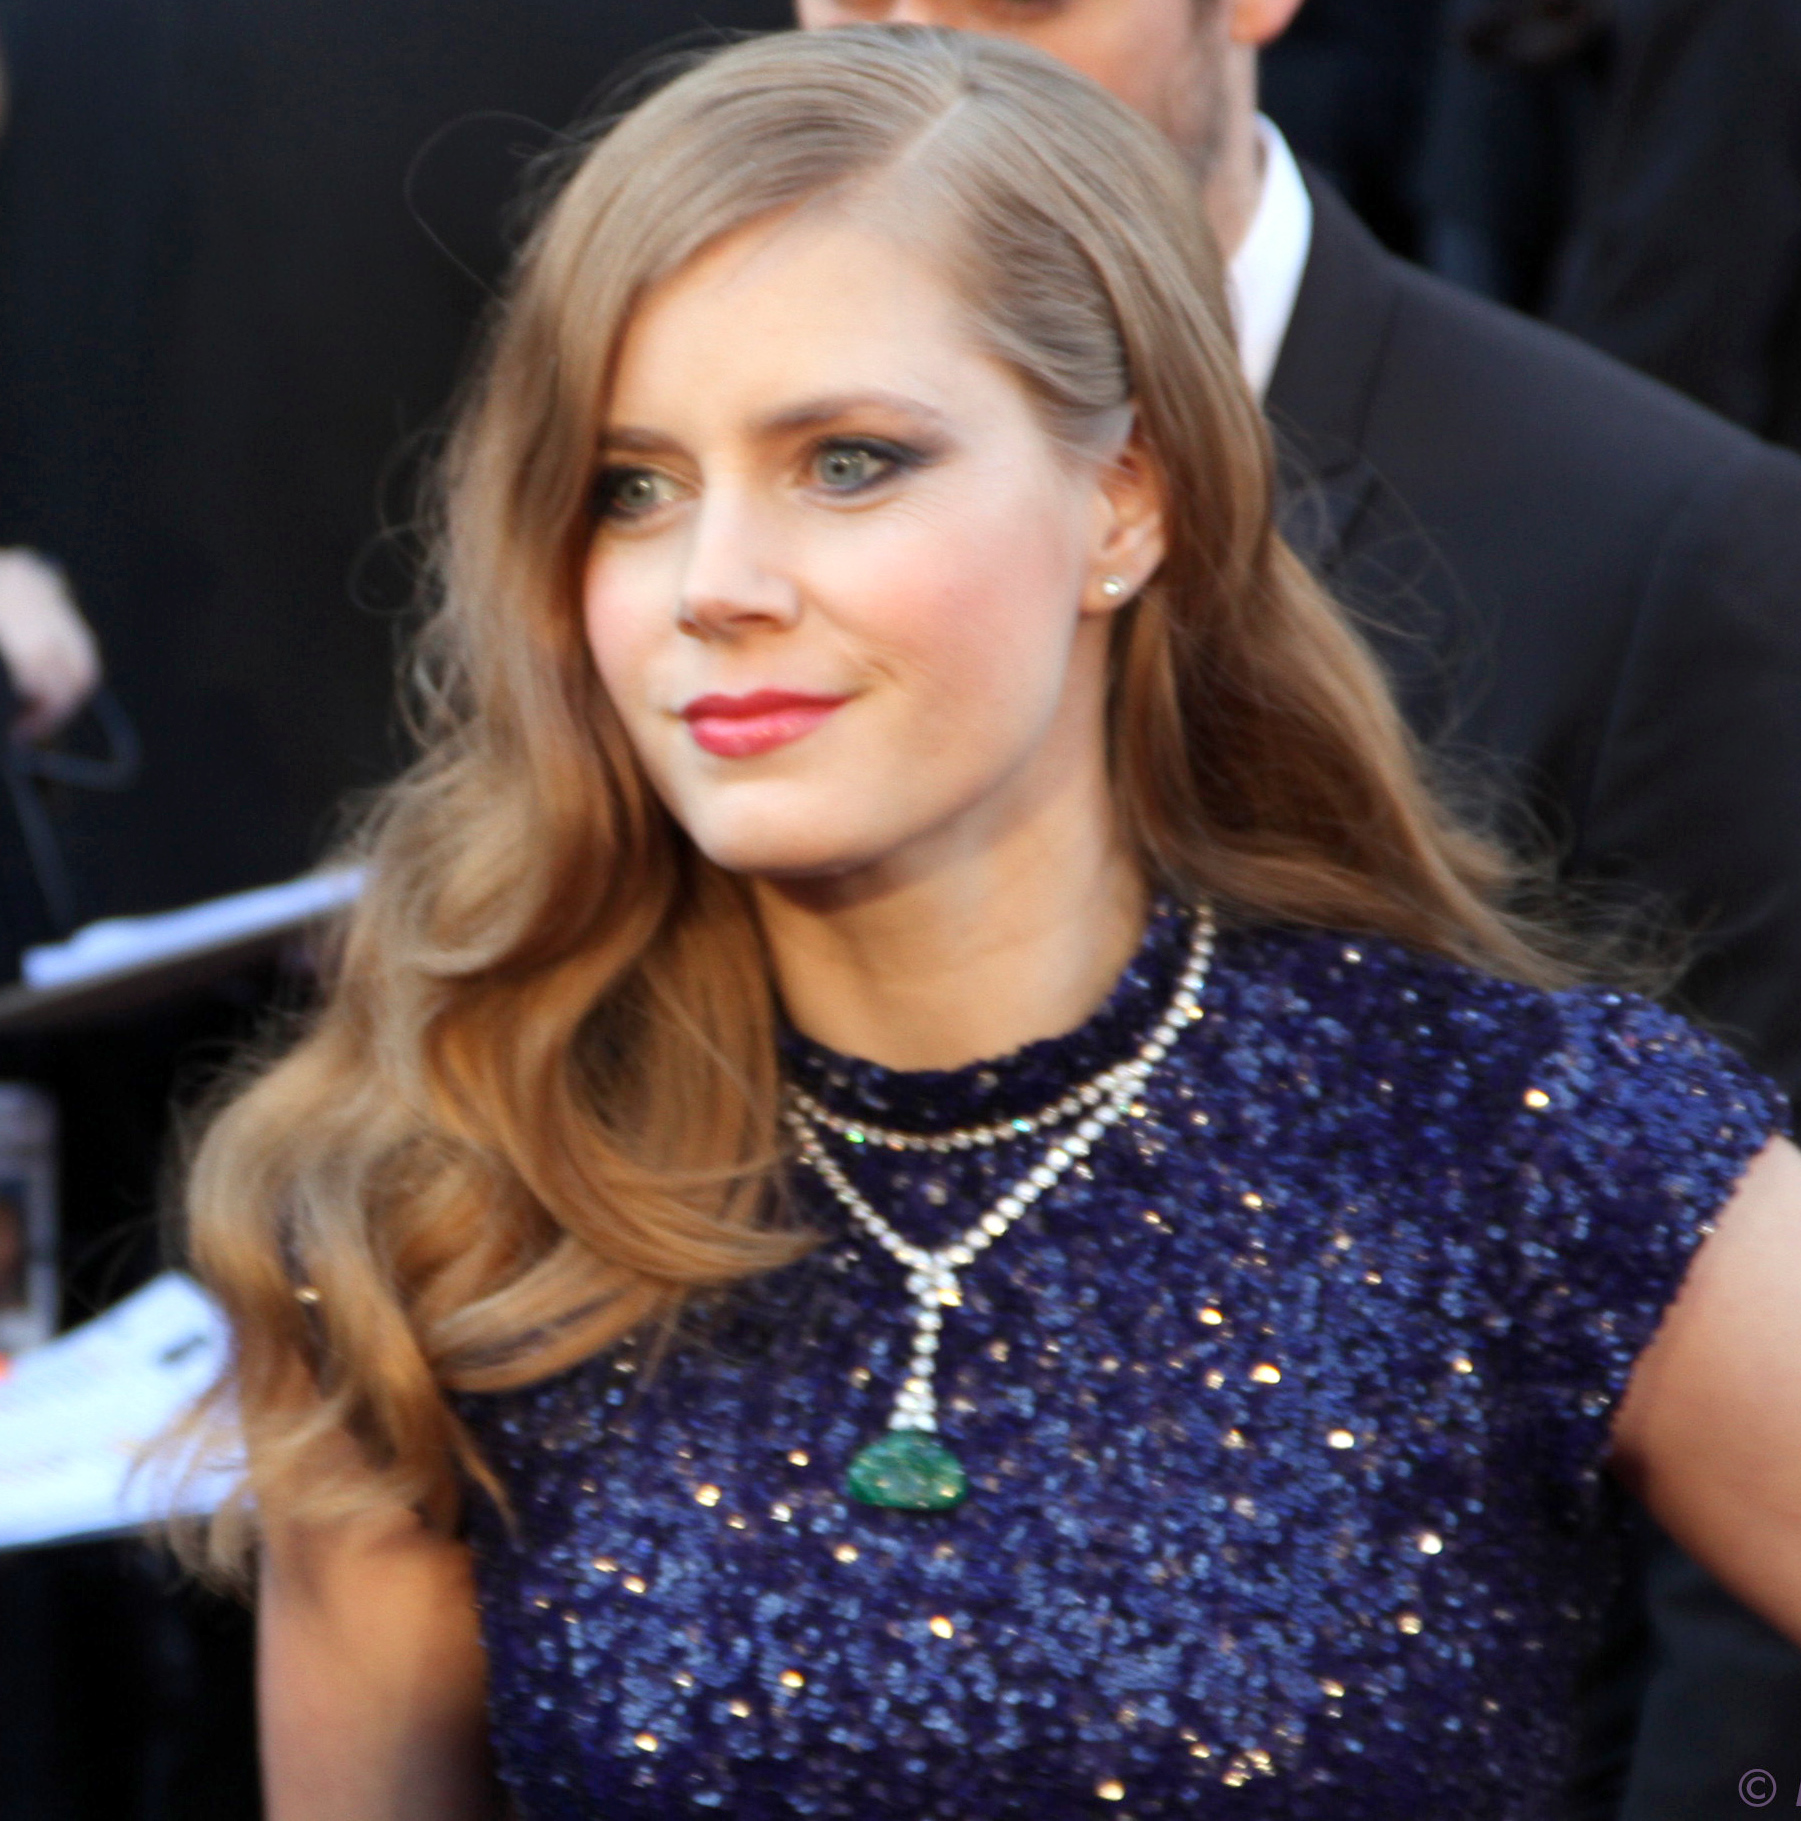 Amy Adams Wikipedia Español file:amy adams 2011 - wikimedia commons